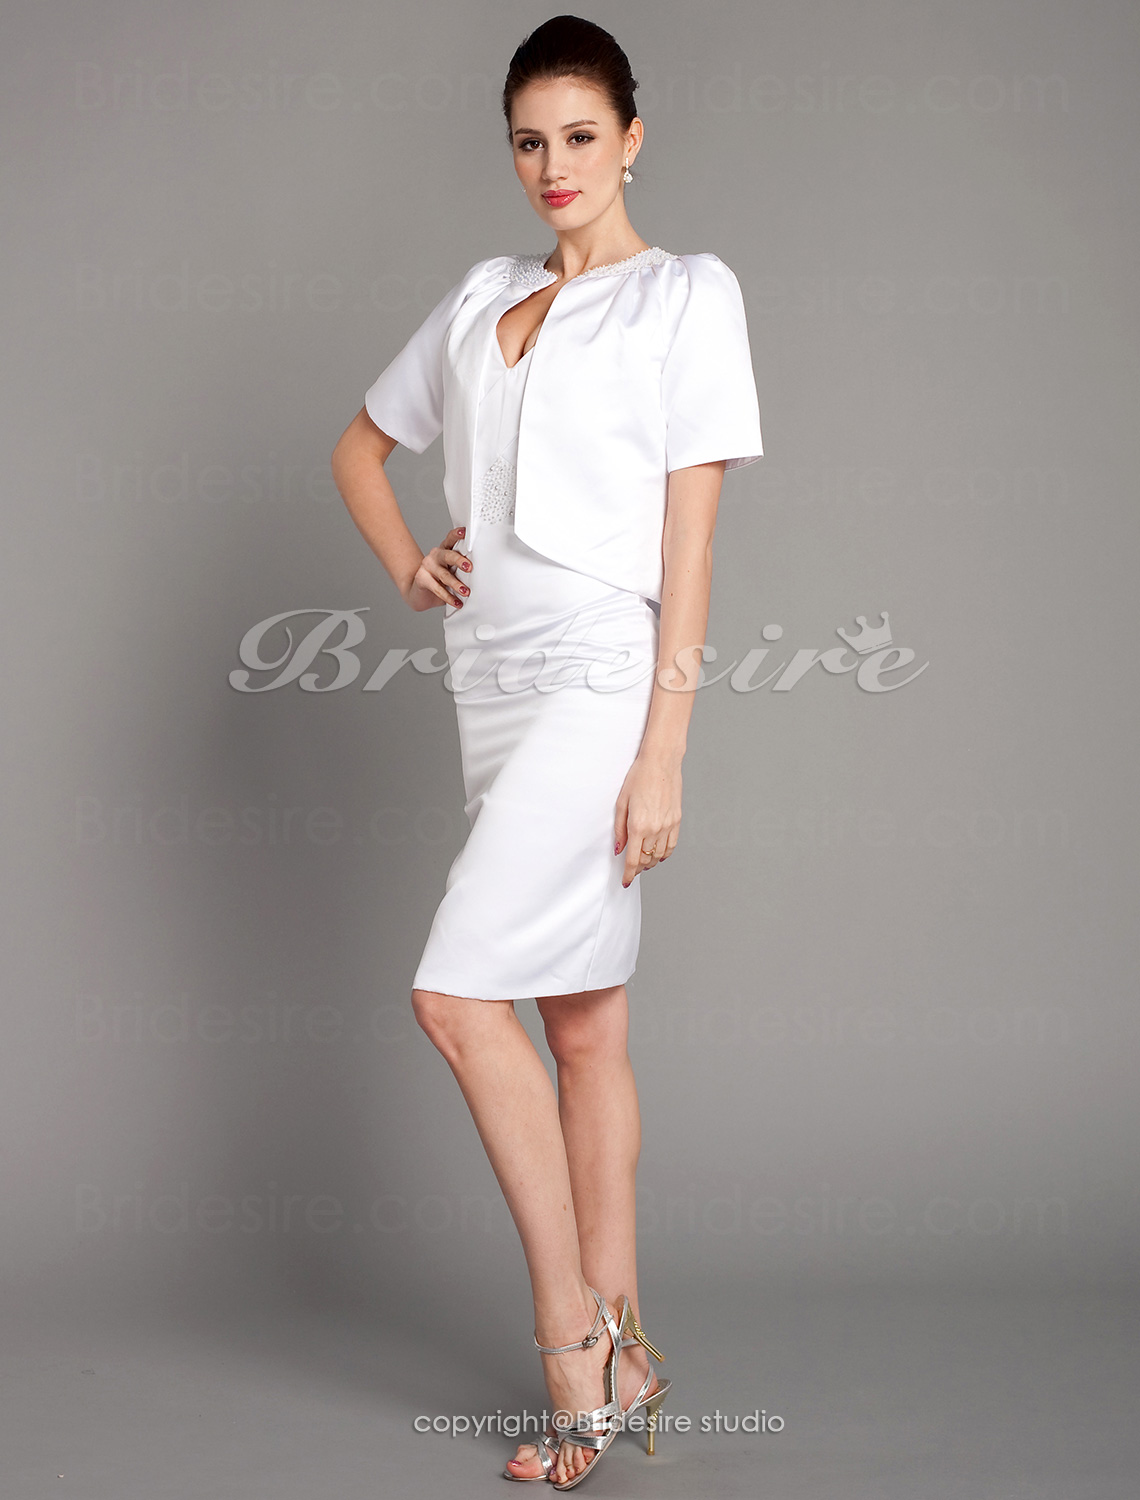 Sheath/ Column Satin Knee-length V-neck Bridesmaid/ Wedding Party Dress With A Wrap